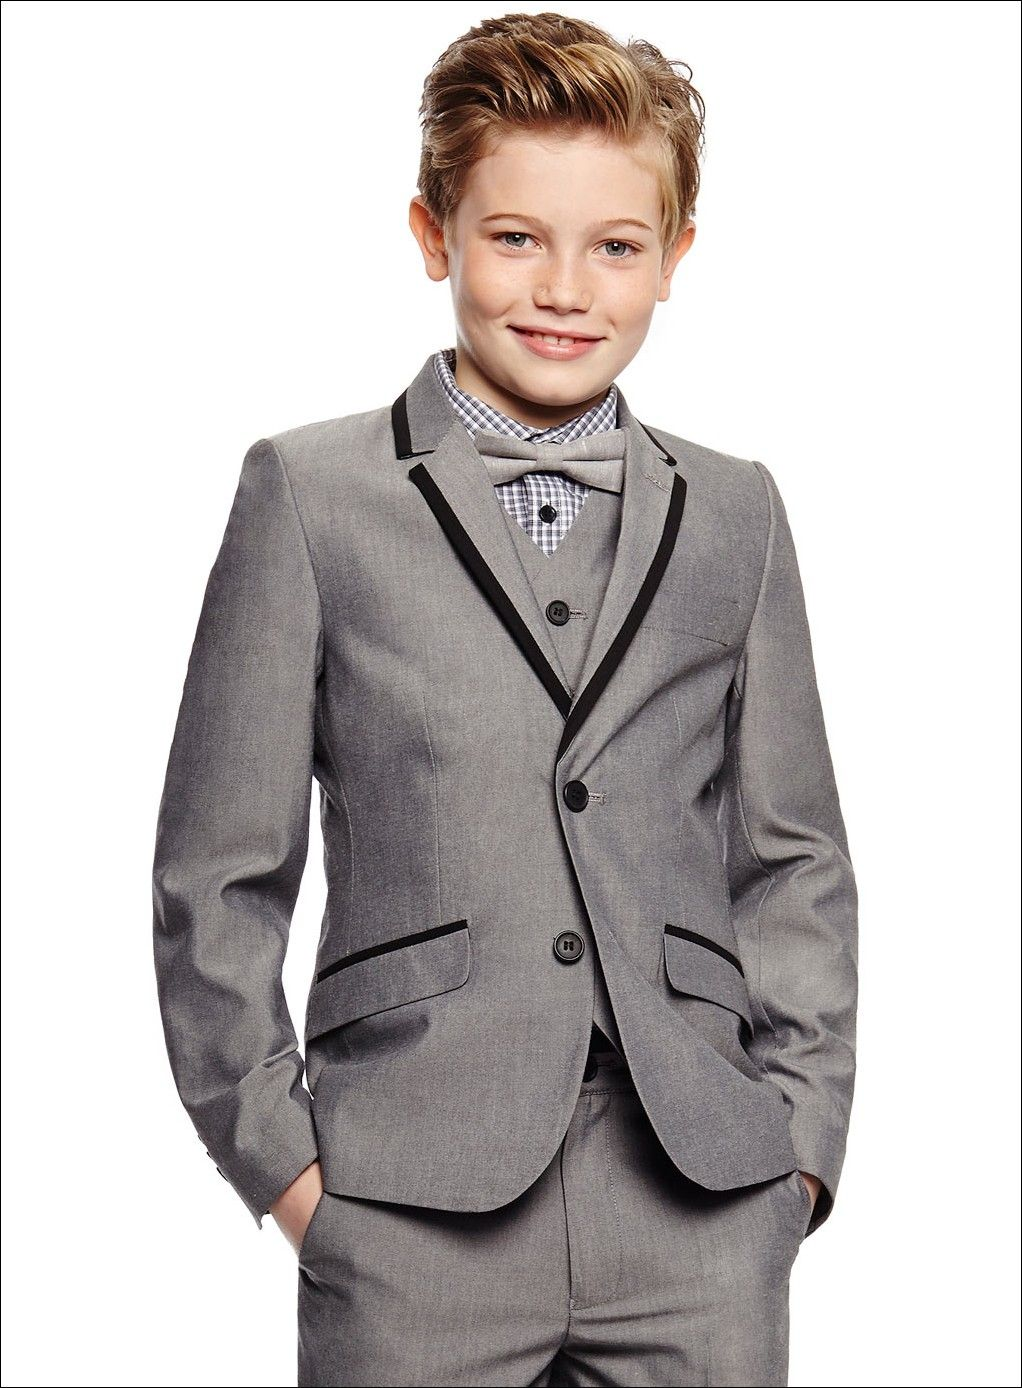 aeb2117c9eed teenager suit trend - Google Search